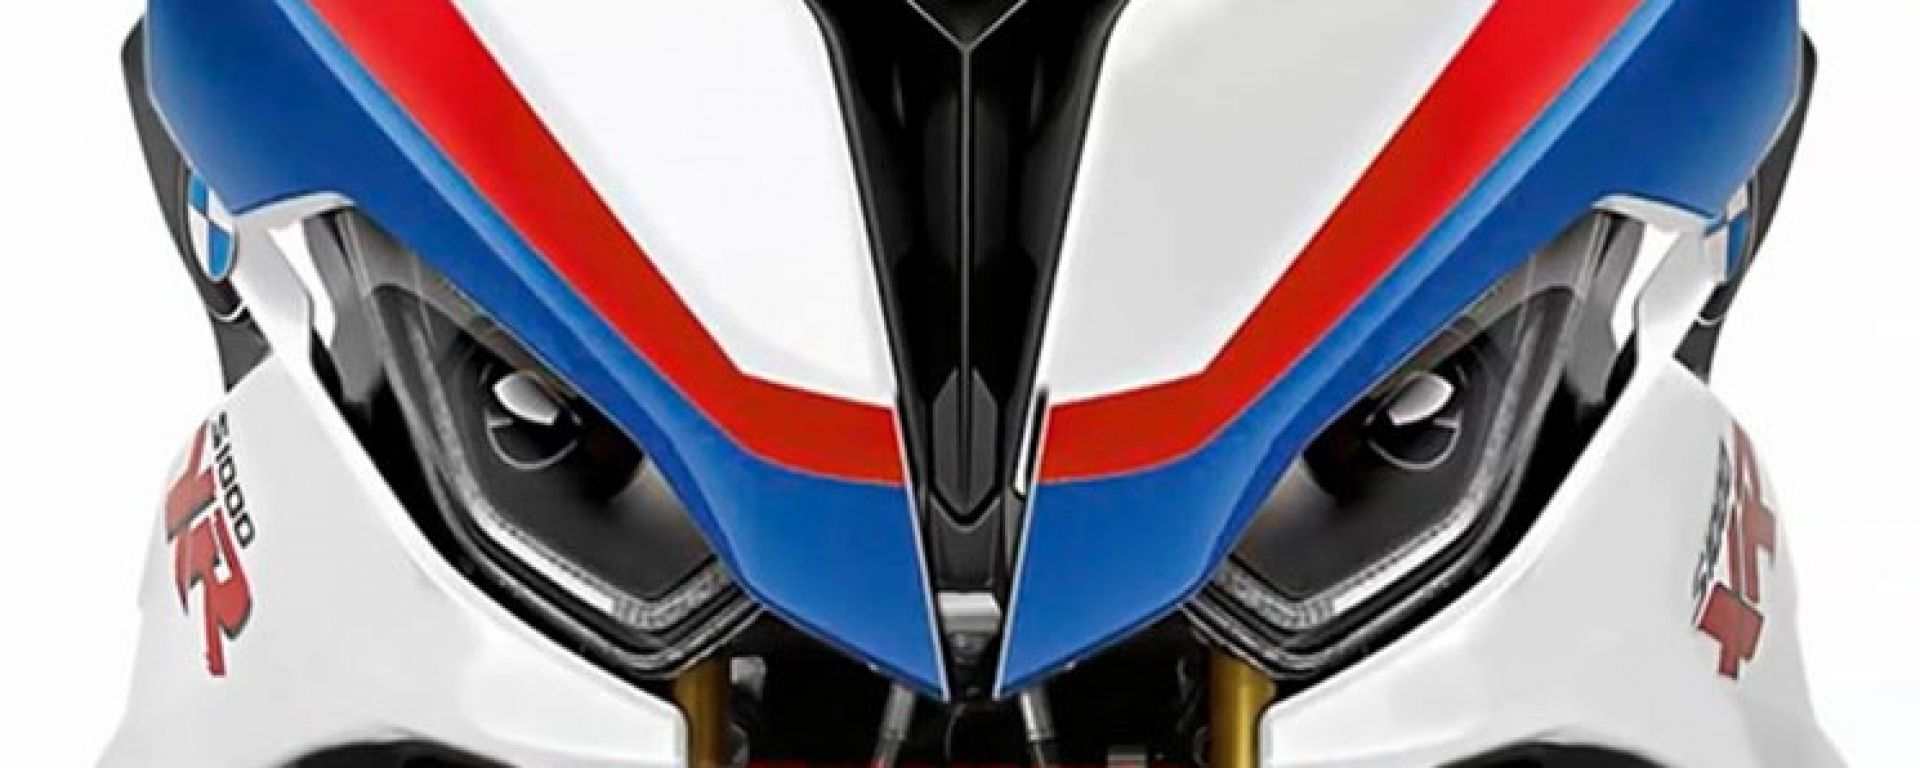 Nuove BMW S1000 XR e F850 XR insieme in un teaser pre-EICMA?